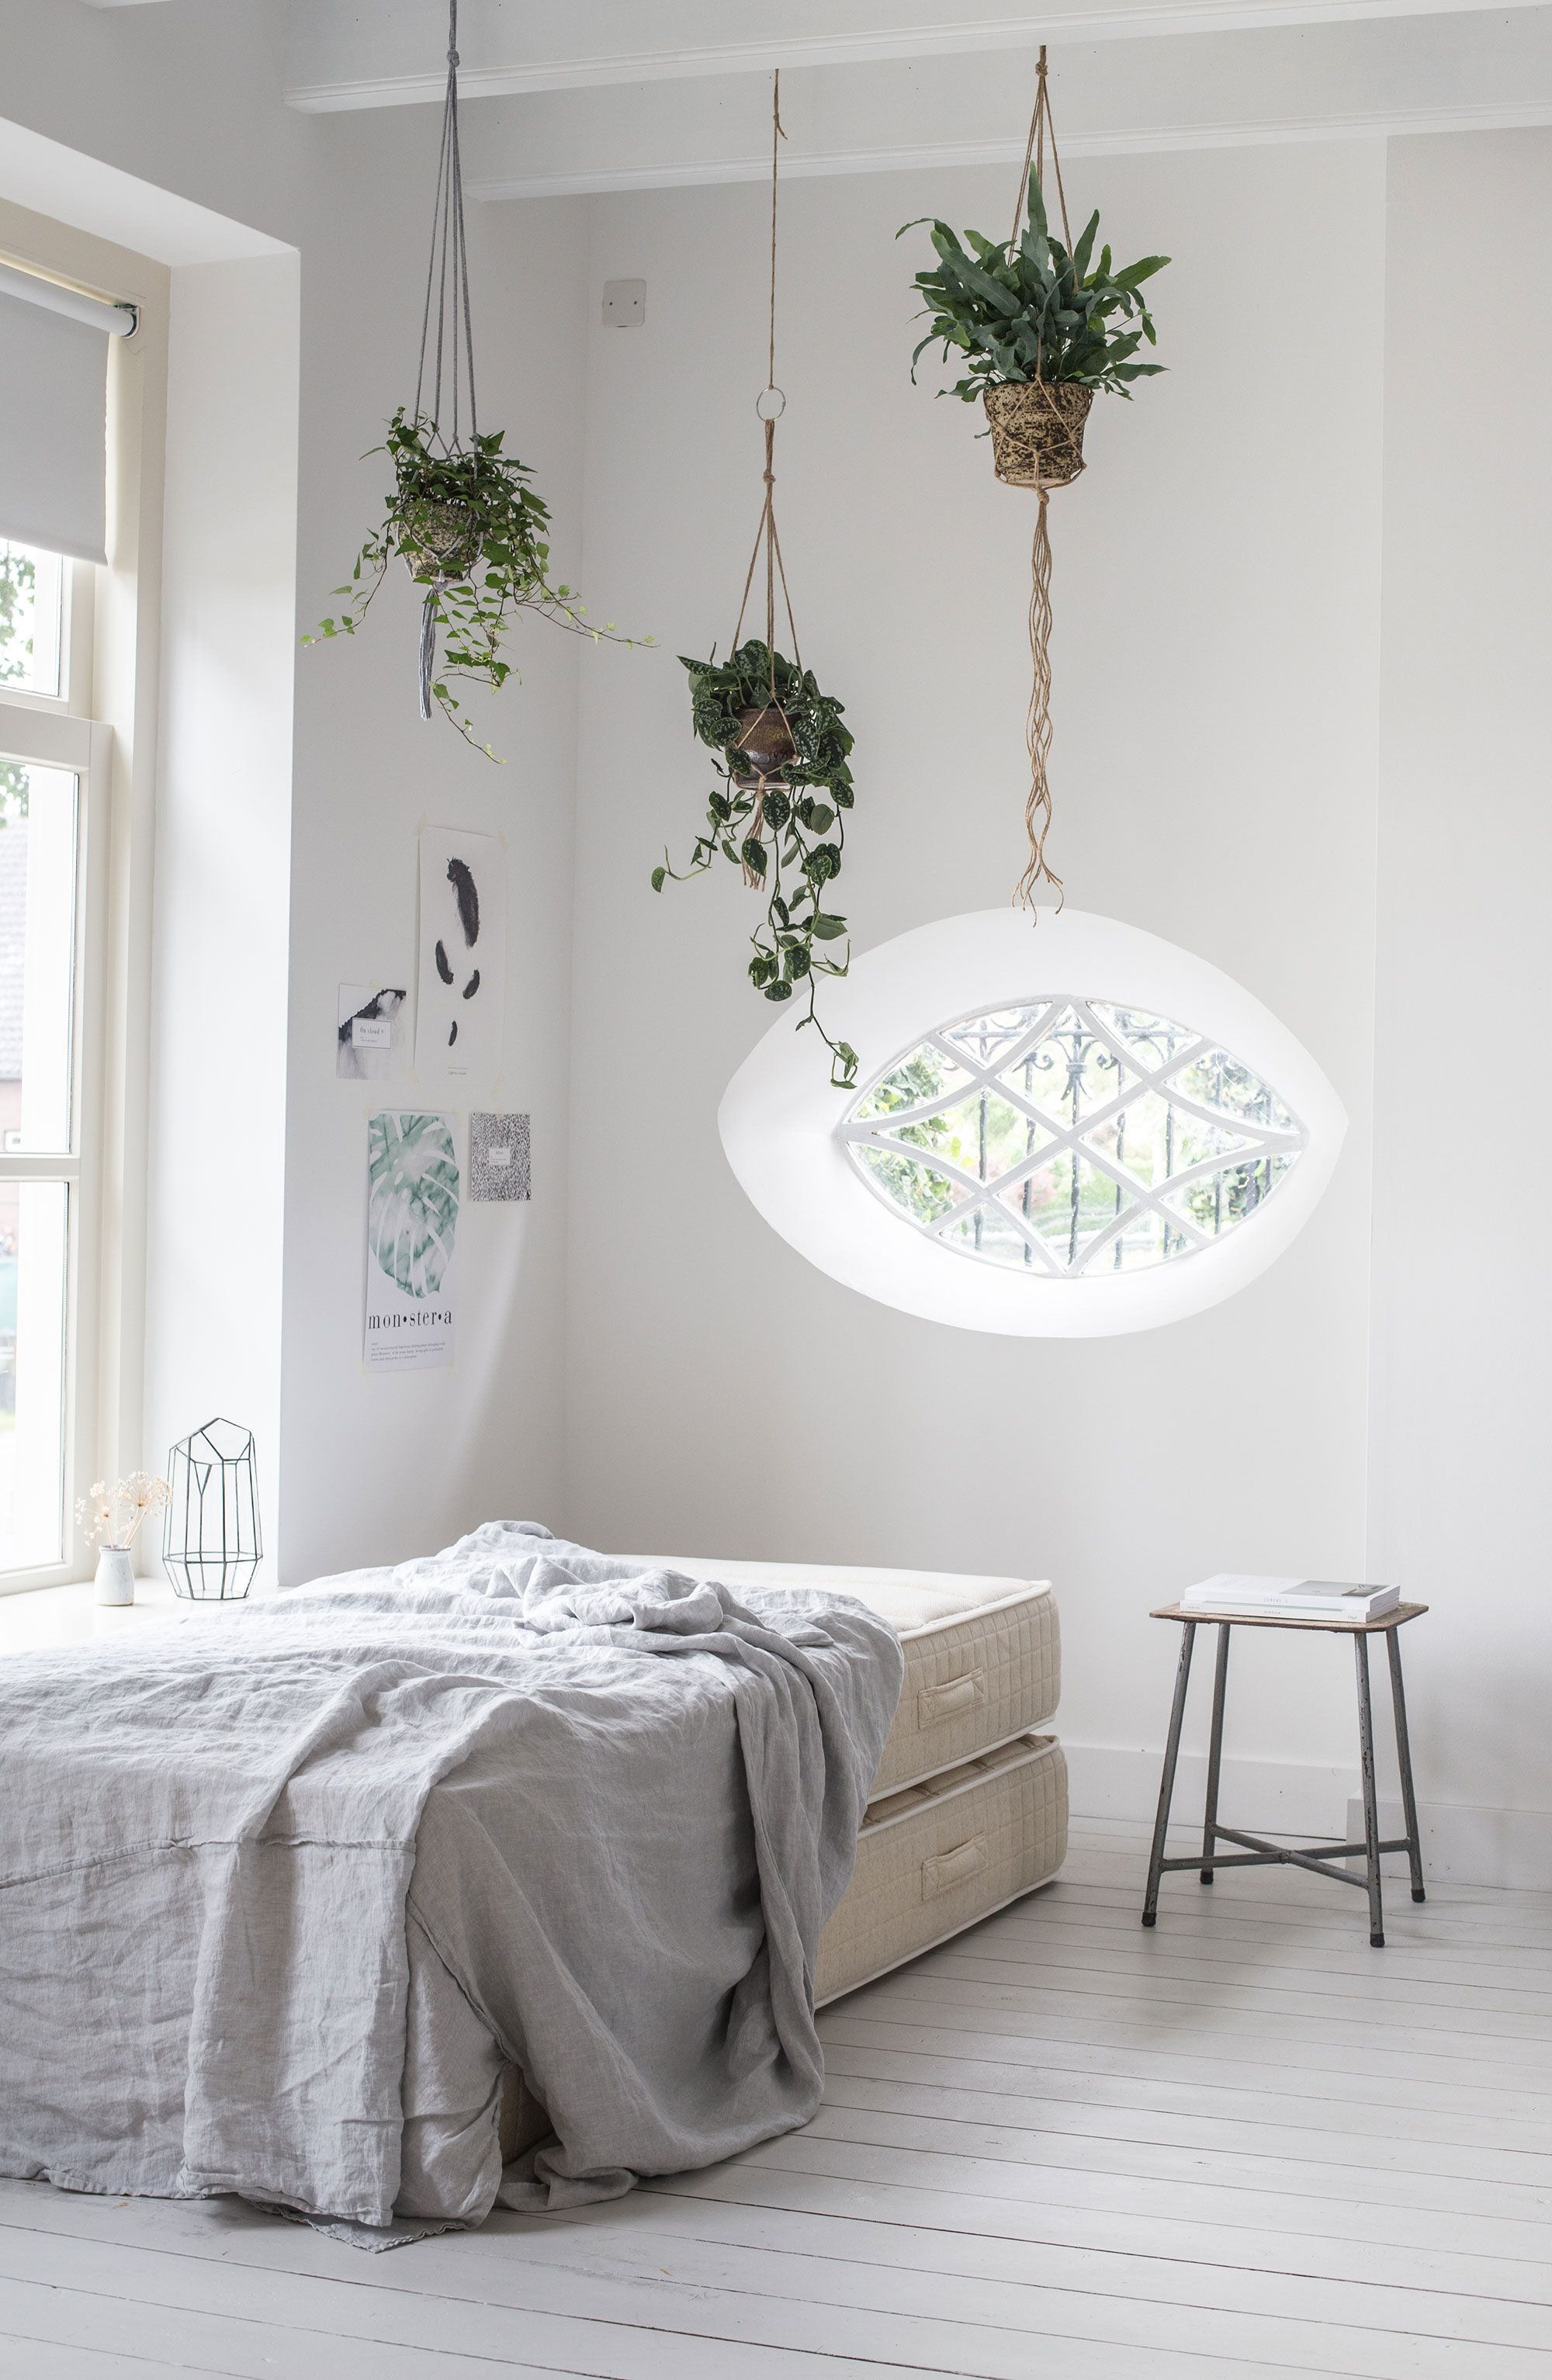 sustainable mattress in white loft house with white wooden floor and hanging plants. Special oval window and gray linen sheets from By Molle.